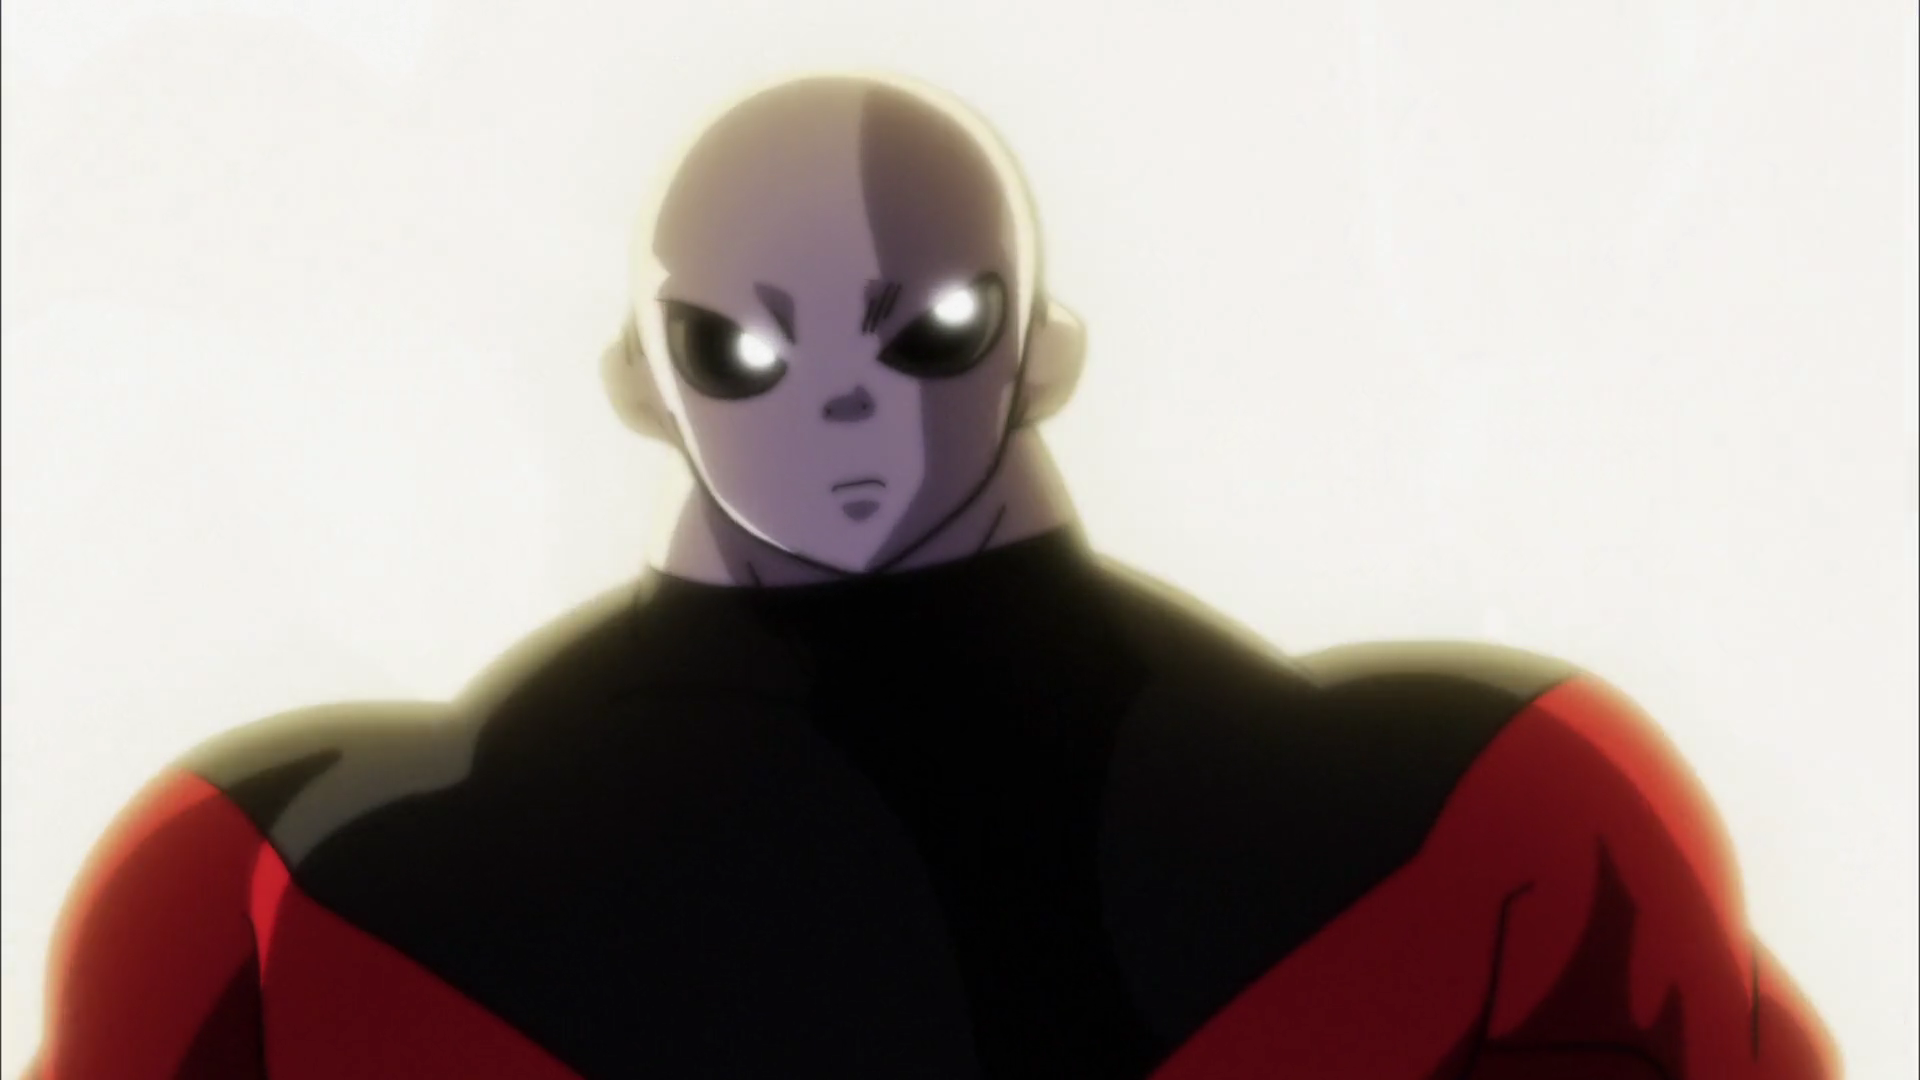 jiren the grey